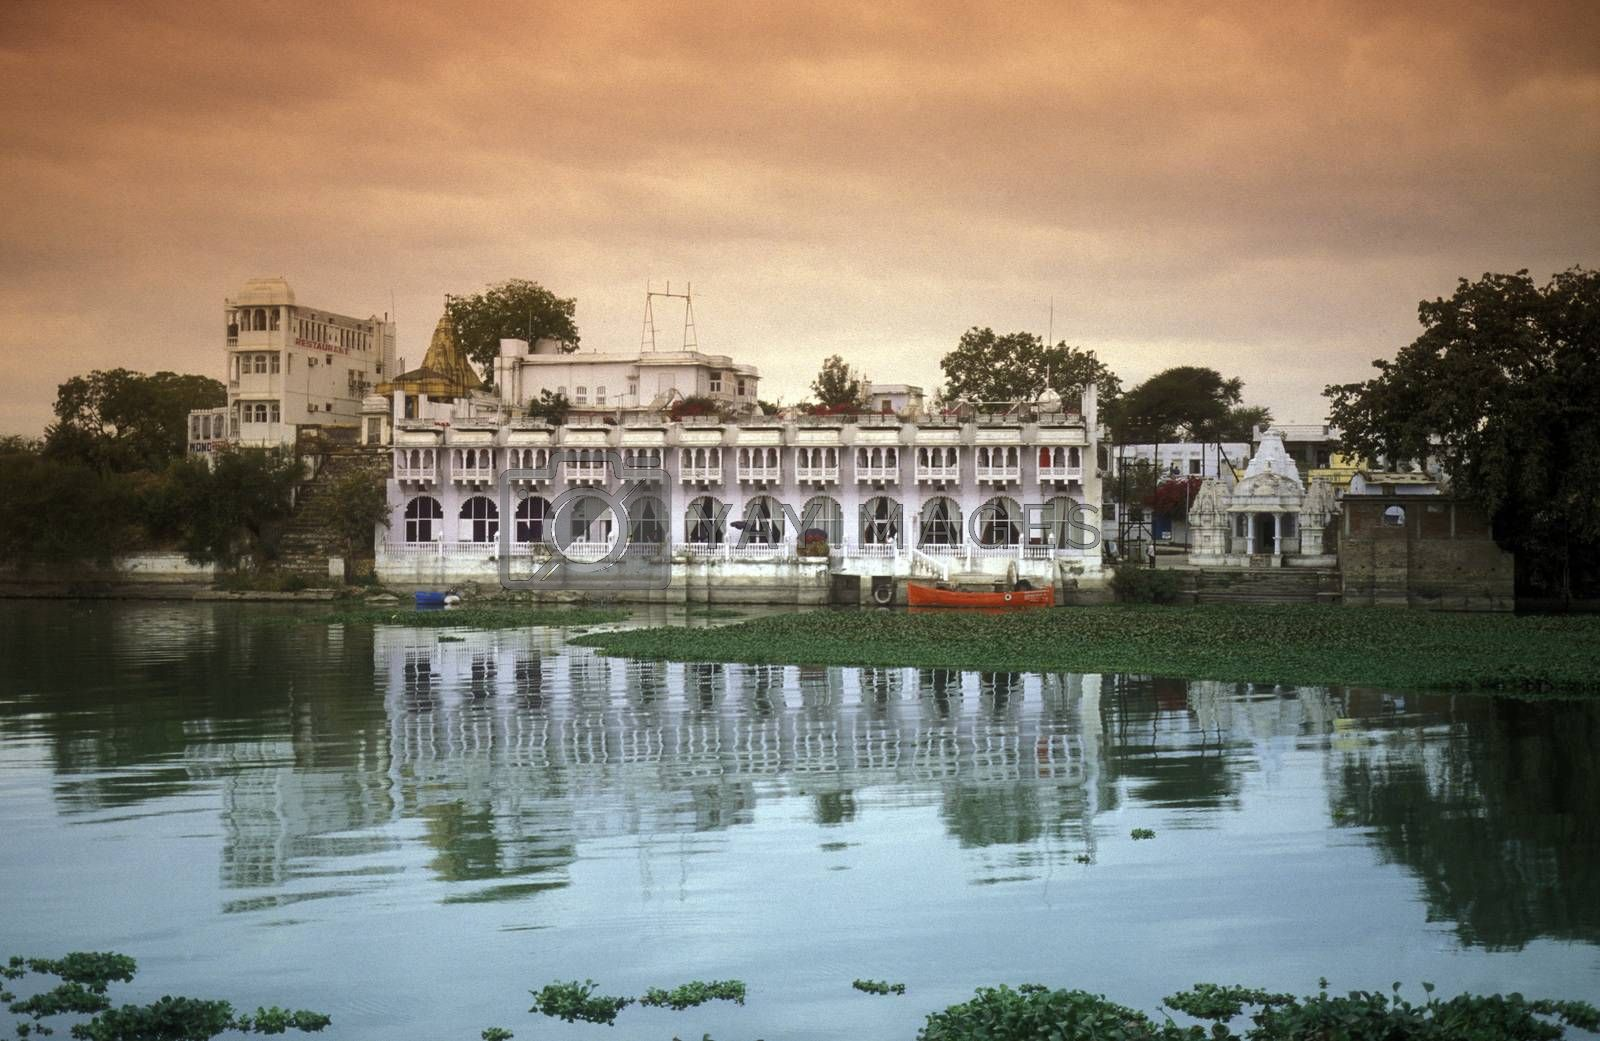 the Lake with the Palace in the town of  Udaipur in Rajasthan in India.